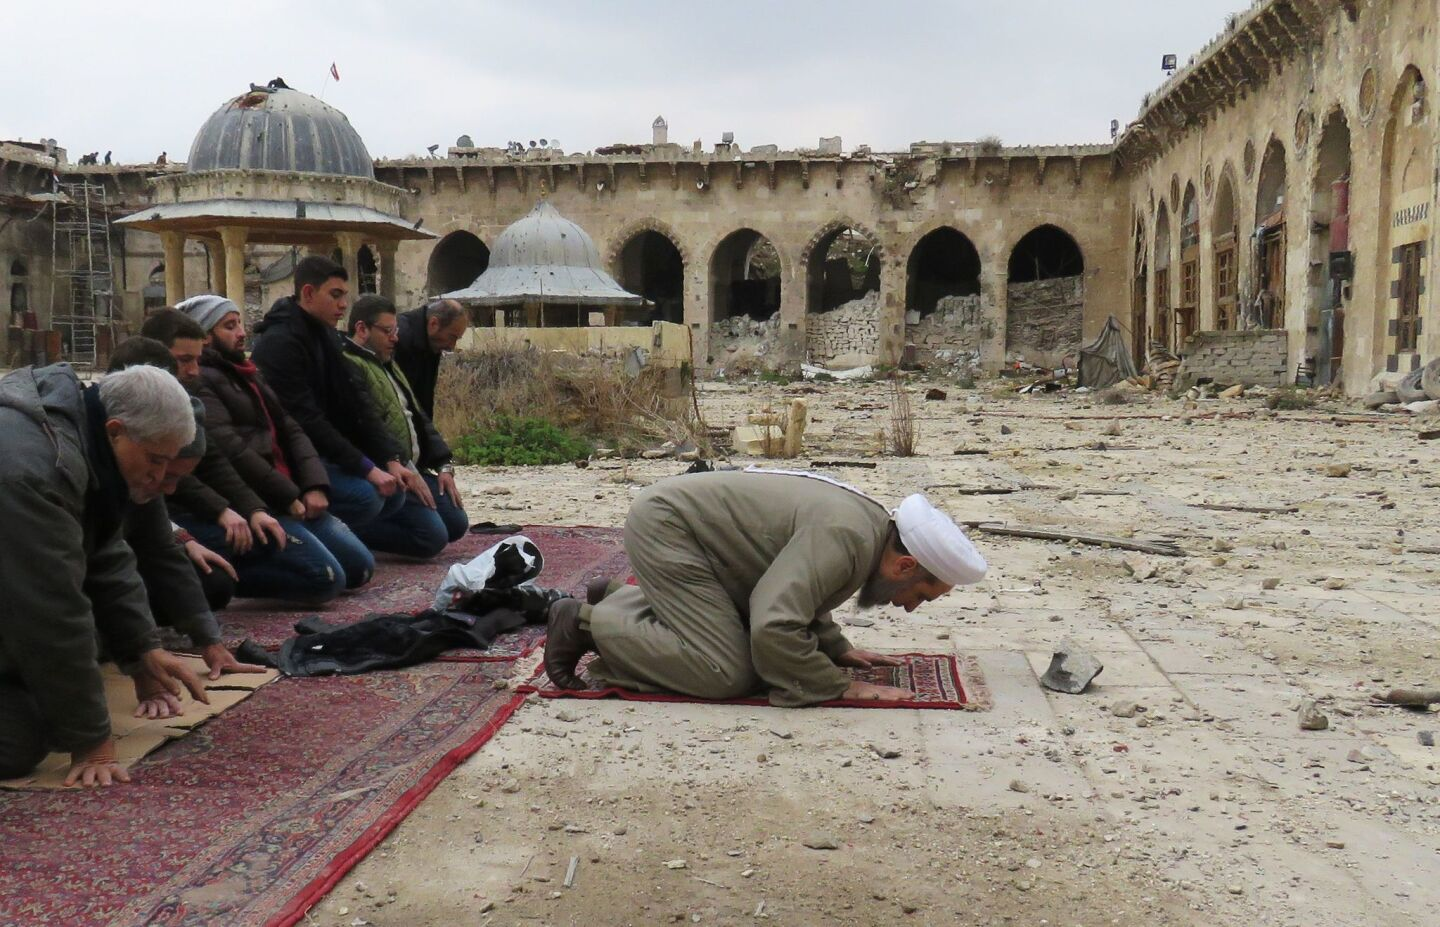 Syrians pray in the ancient Umayyad mosque in the old city of Aleppo, as civilians are allowed access to some neighbourhoods recently retaken by Syrian government forces.